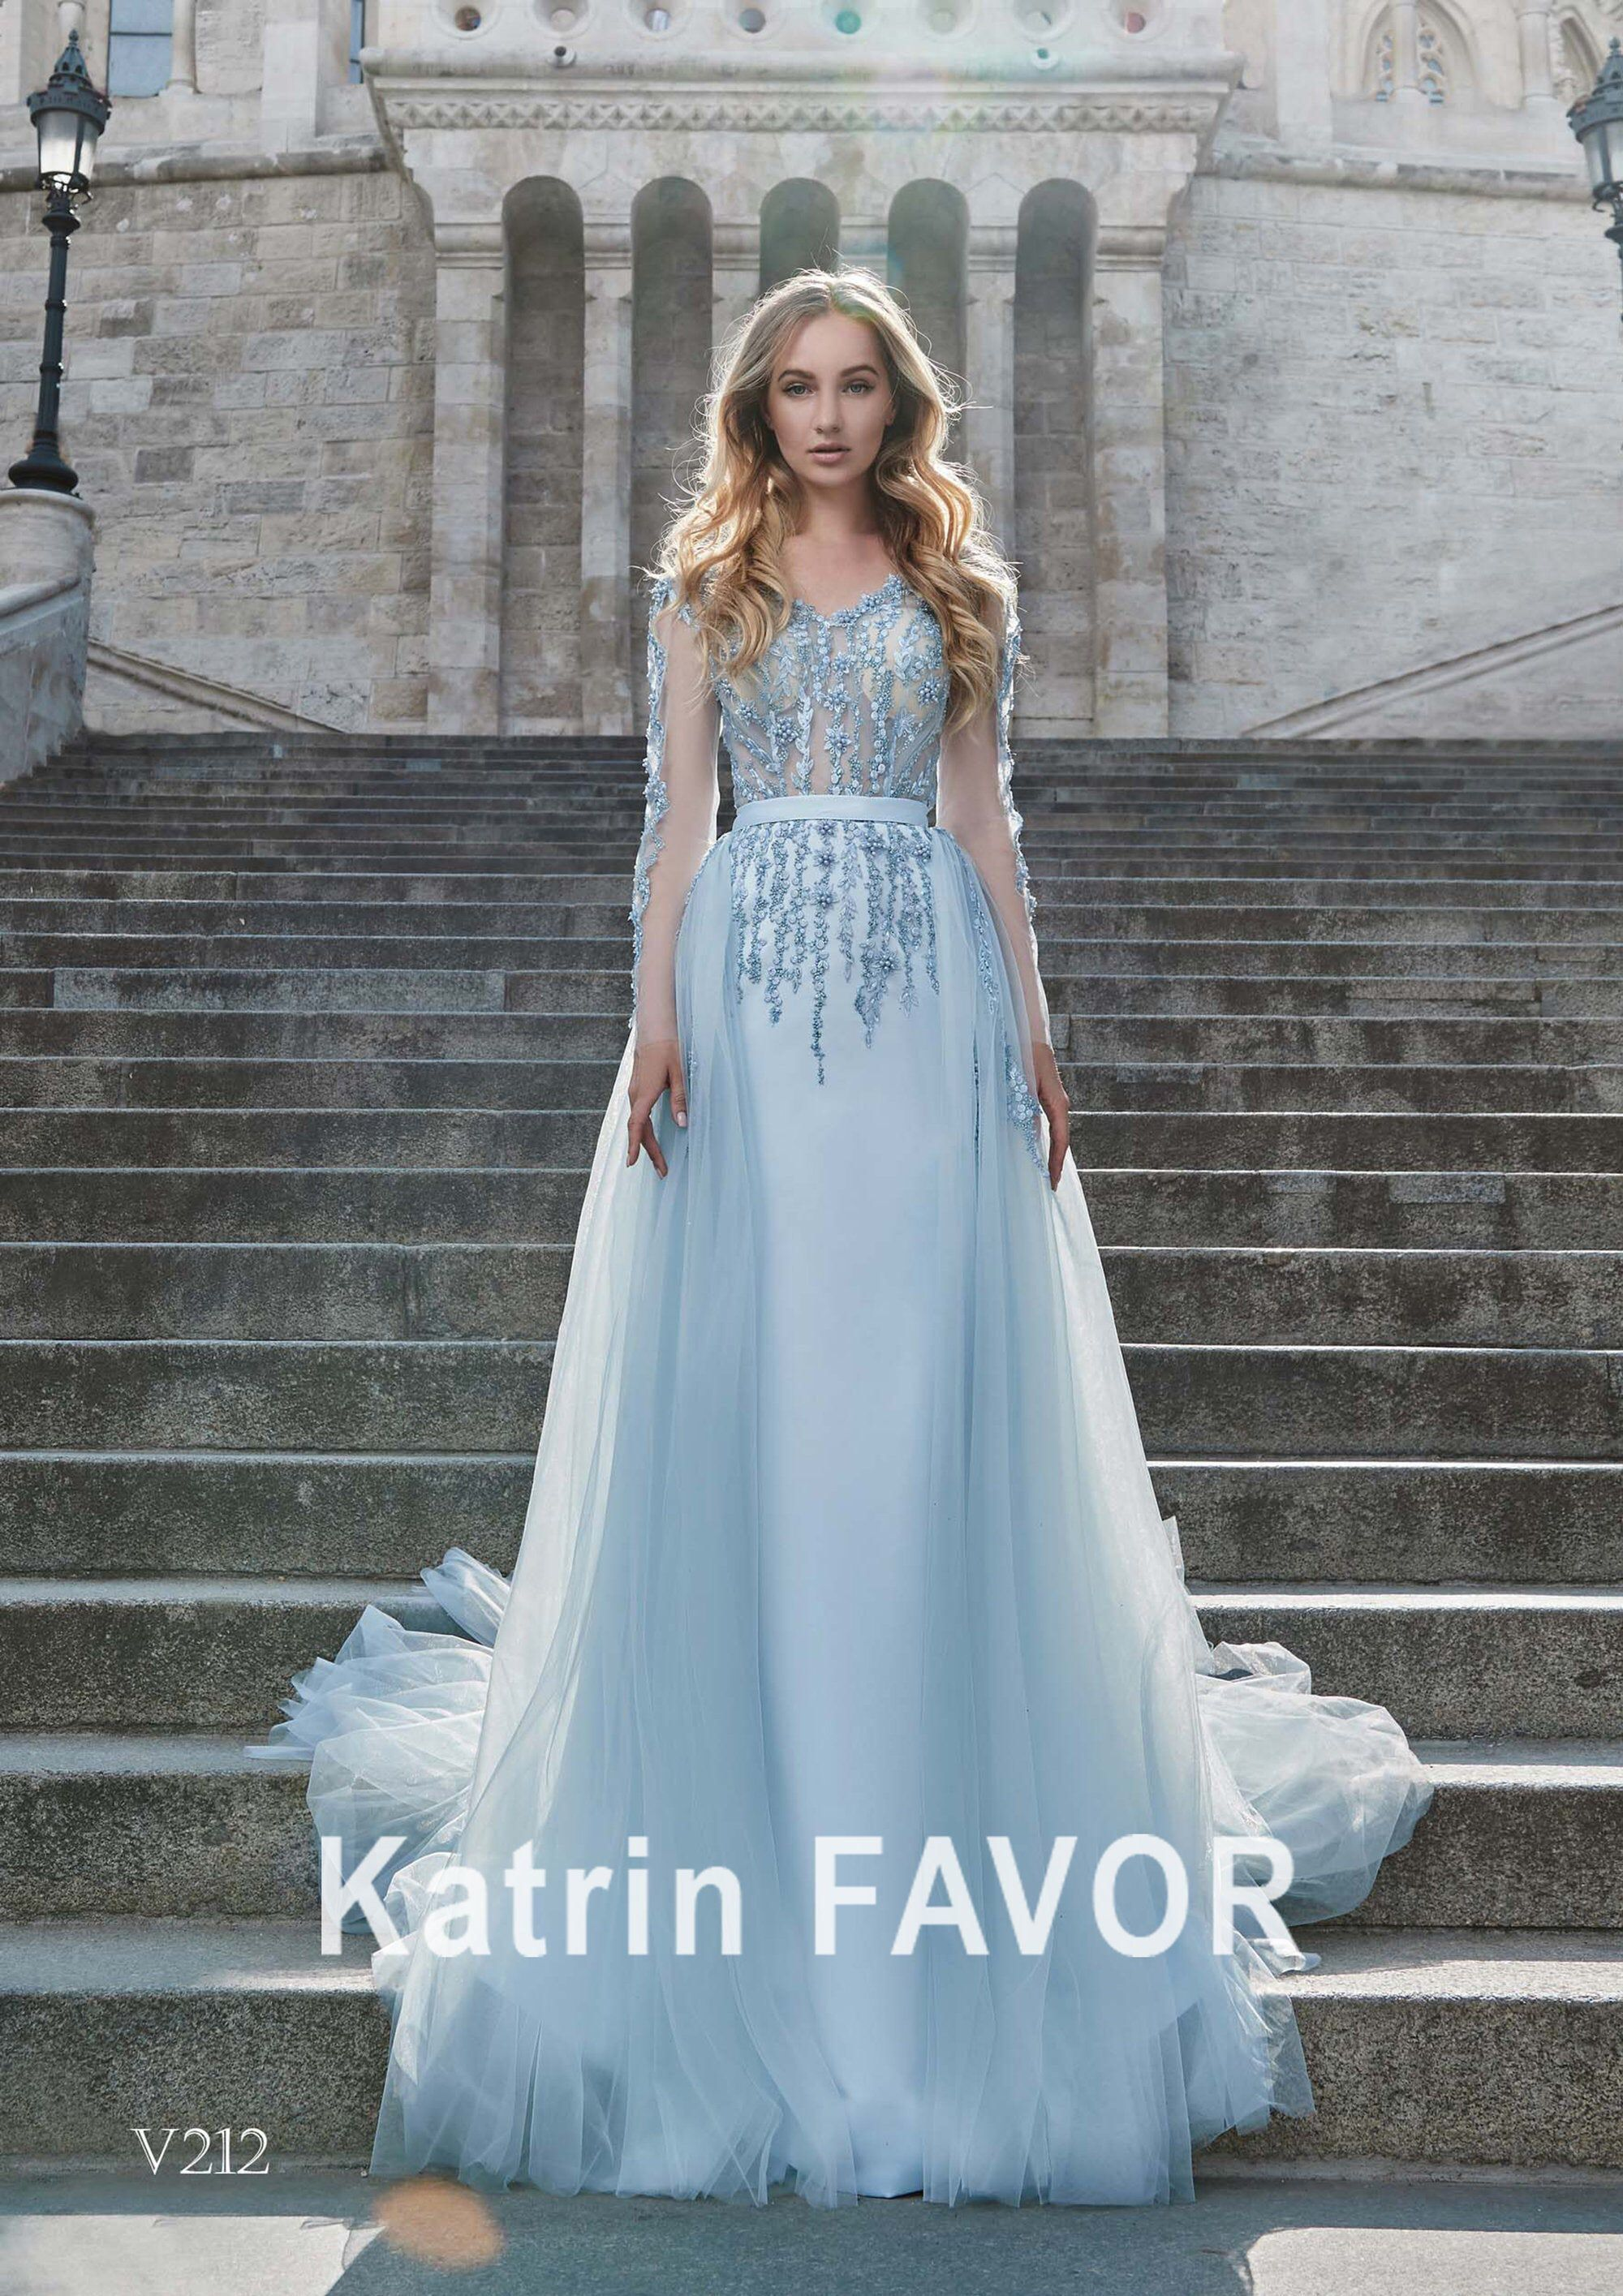 Wedding Dress With Blue Accents Maggie Sottero Blue Wedding Dresses Light Blue Wedding Dress Wedding Dresses [ 1970 x 1101 Pixel ]